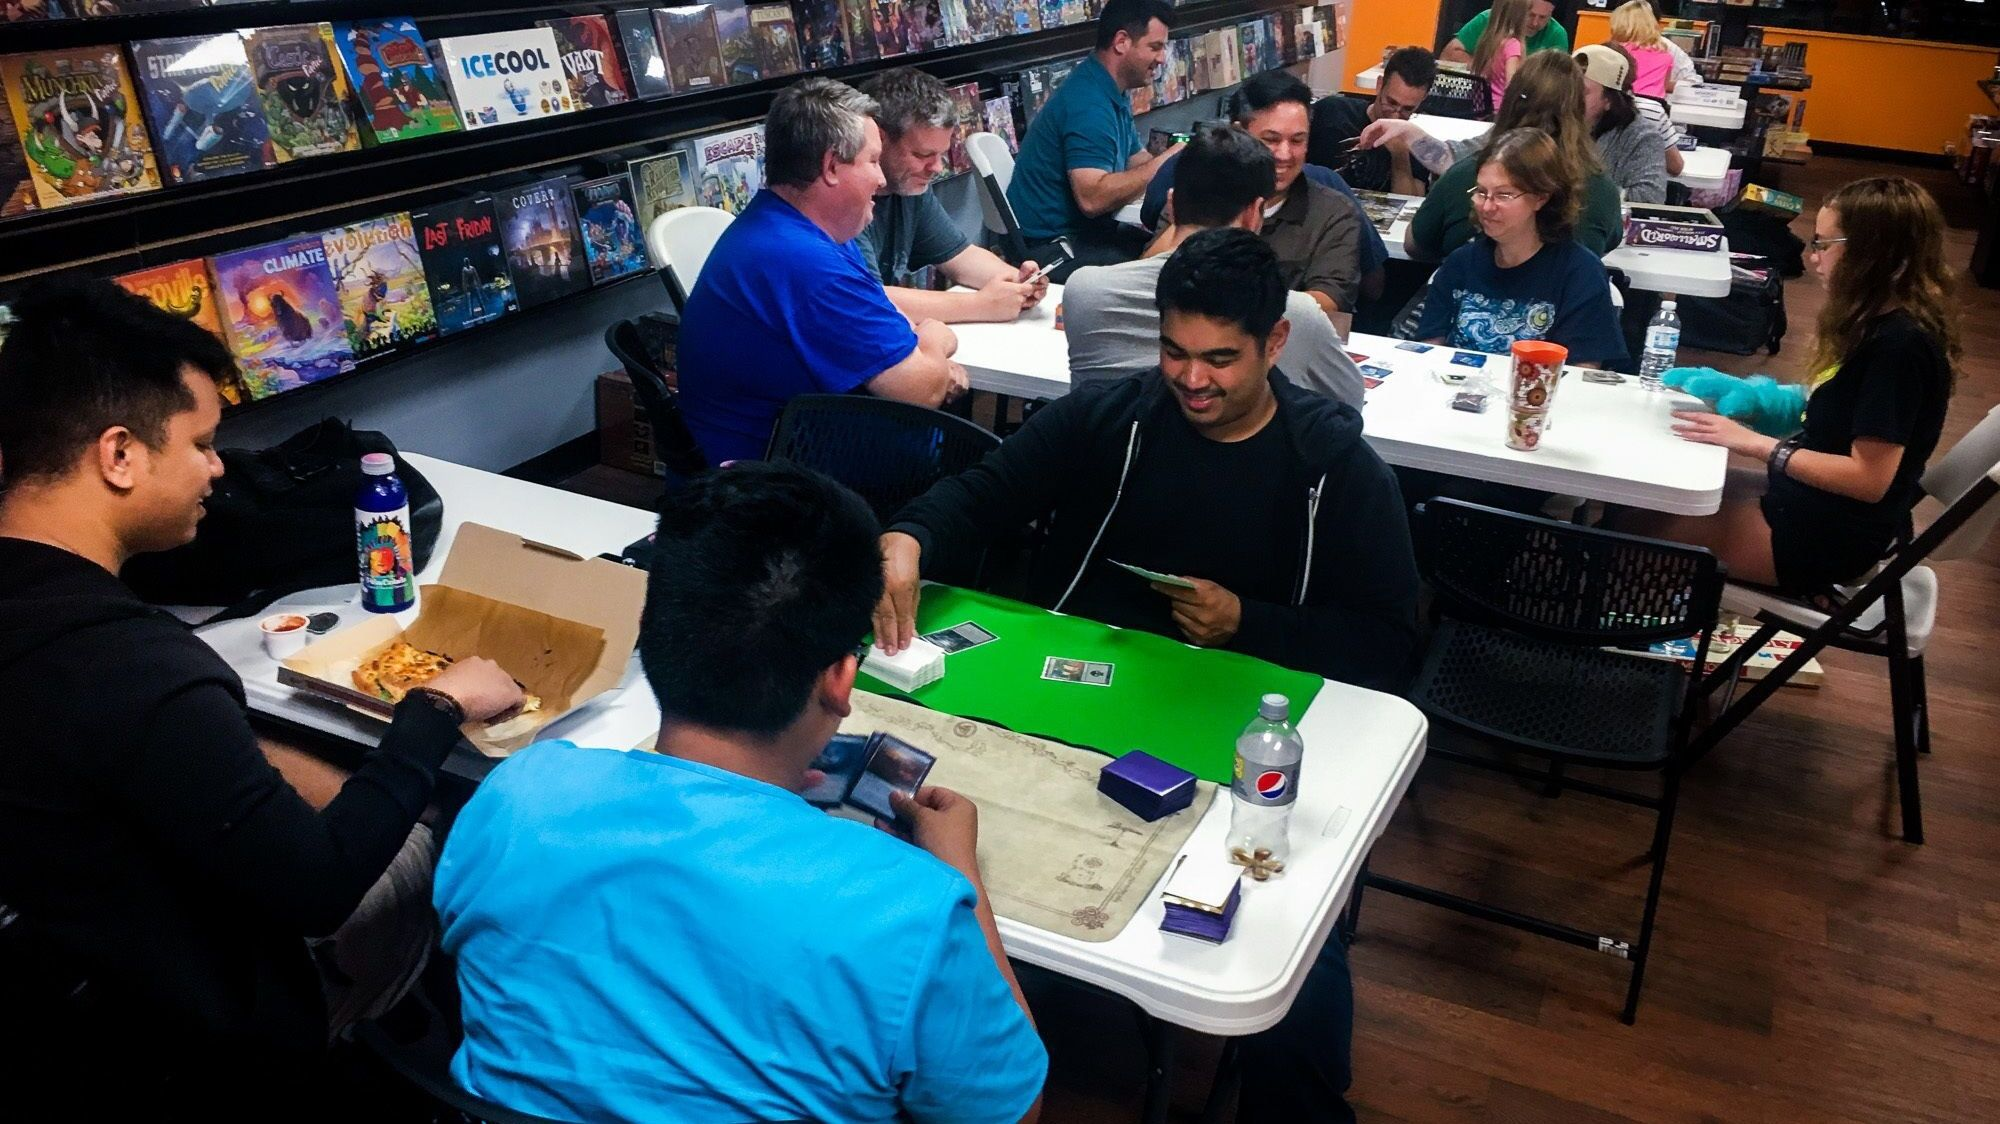 North Suburbs Game Night